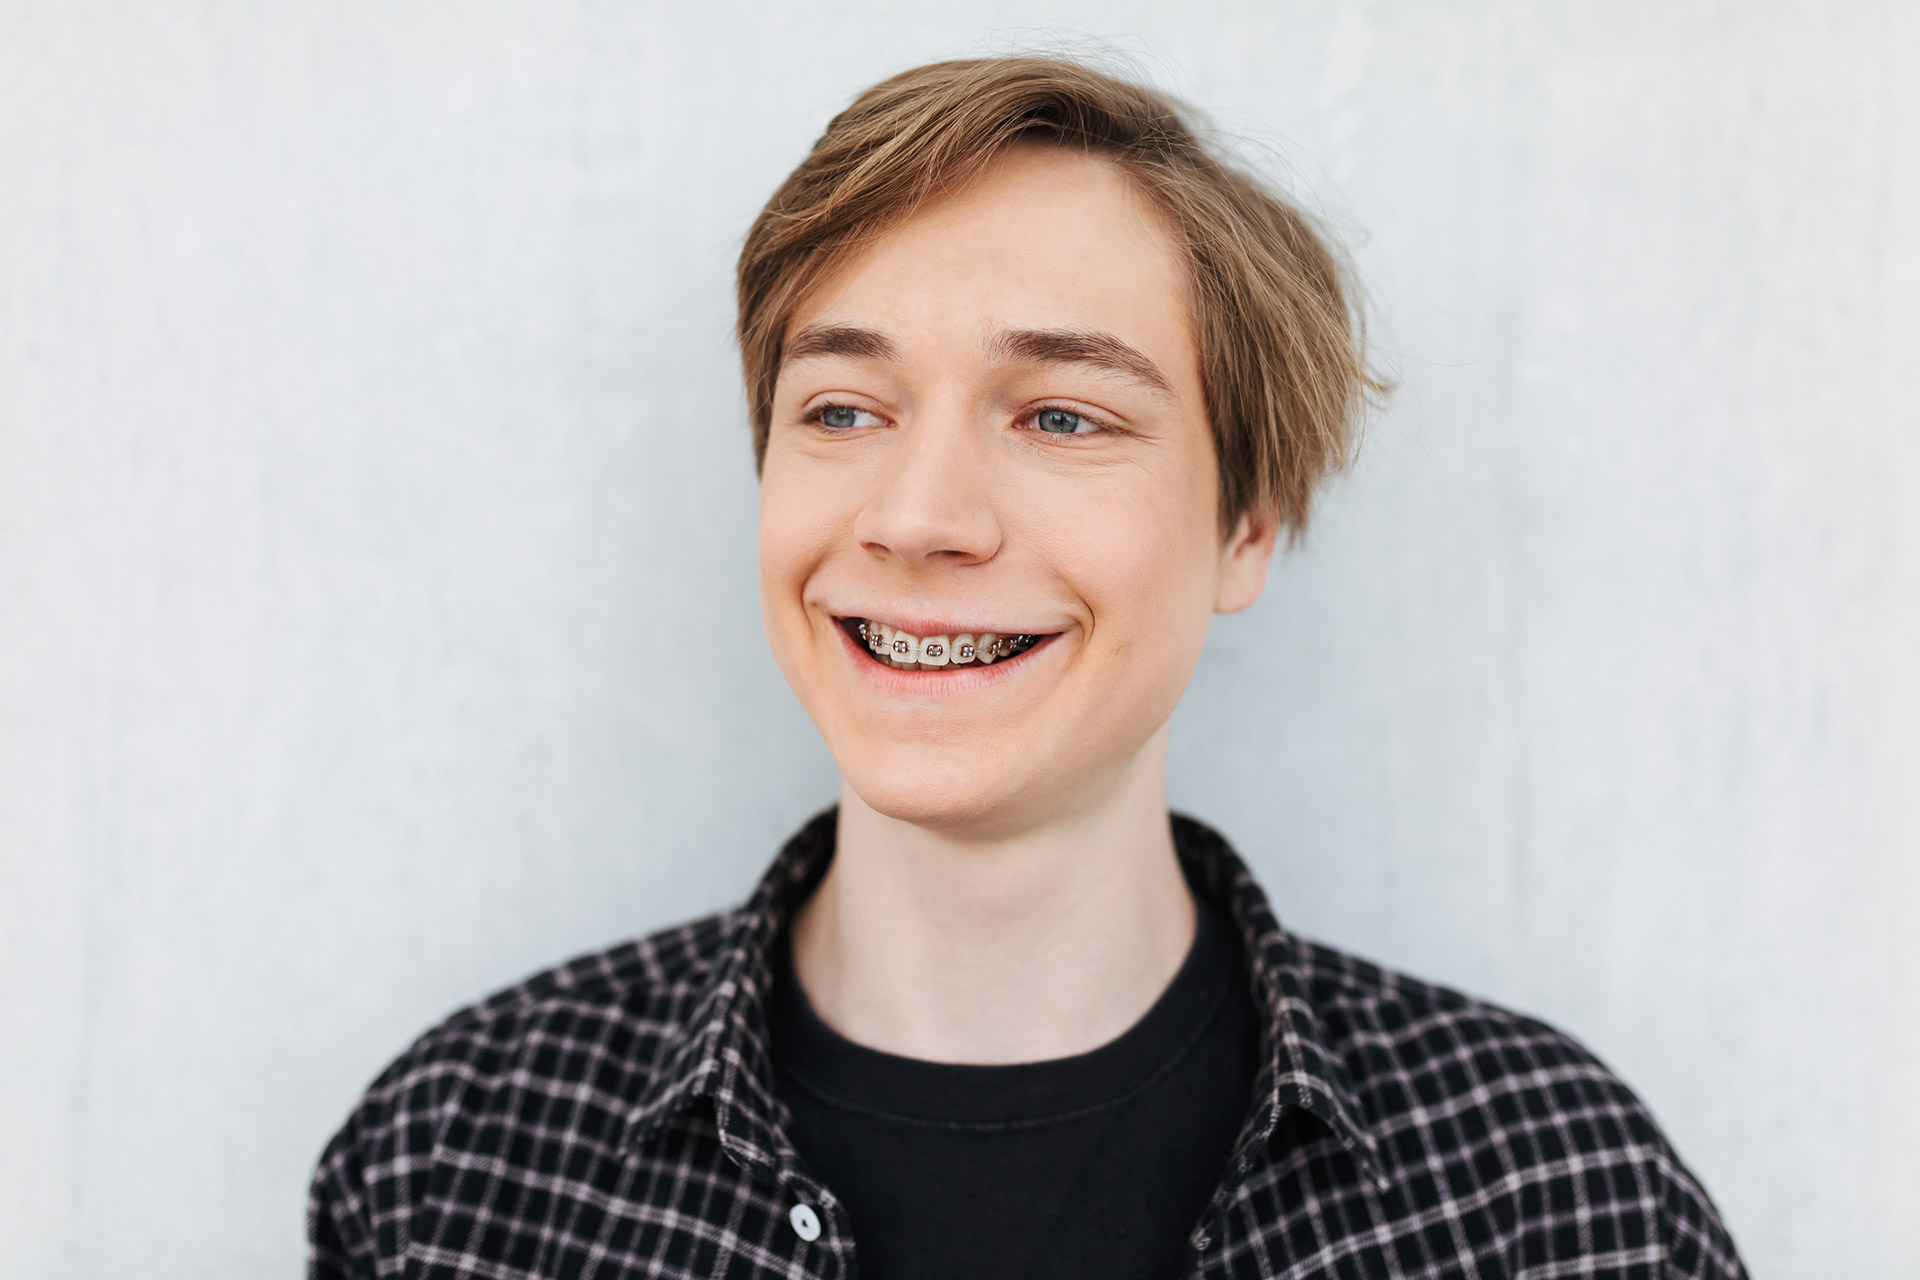 Young teen boy in braces smiling